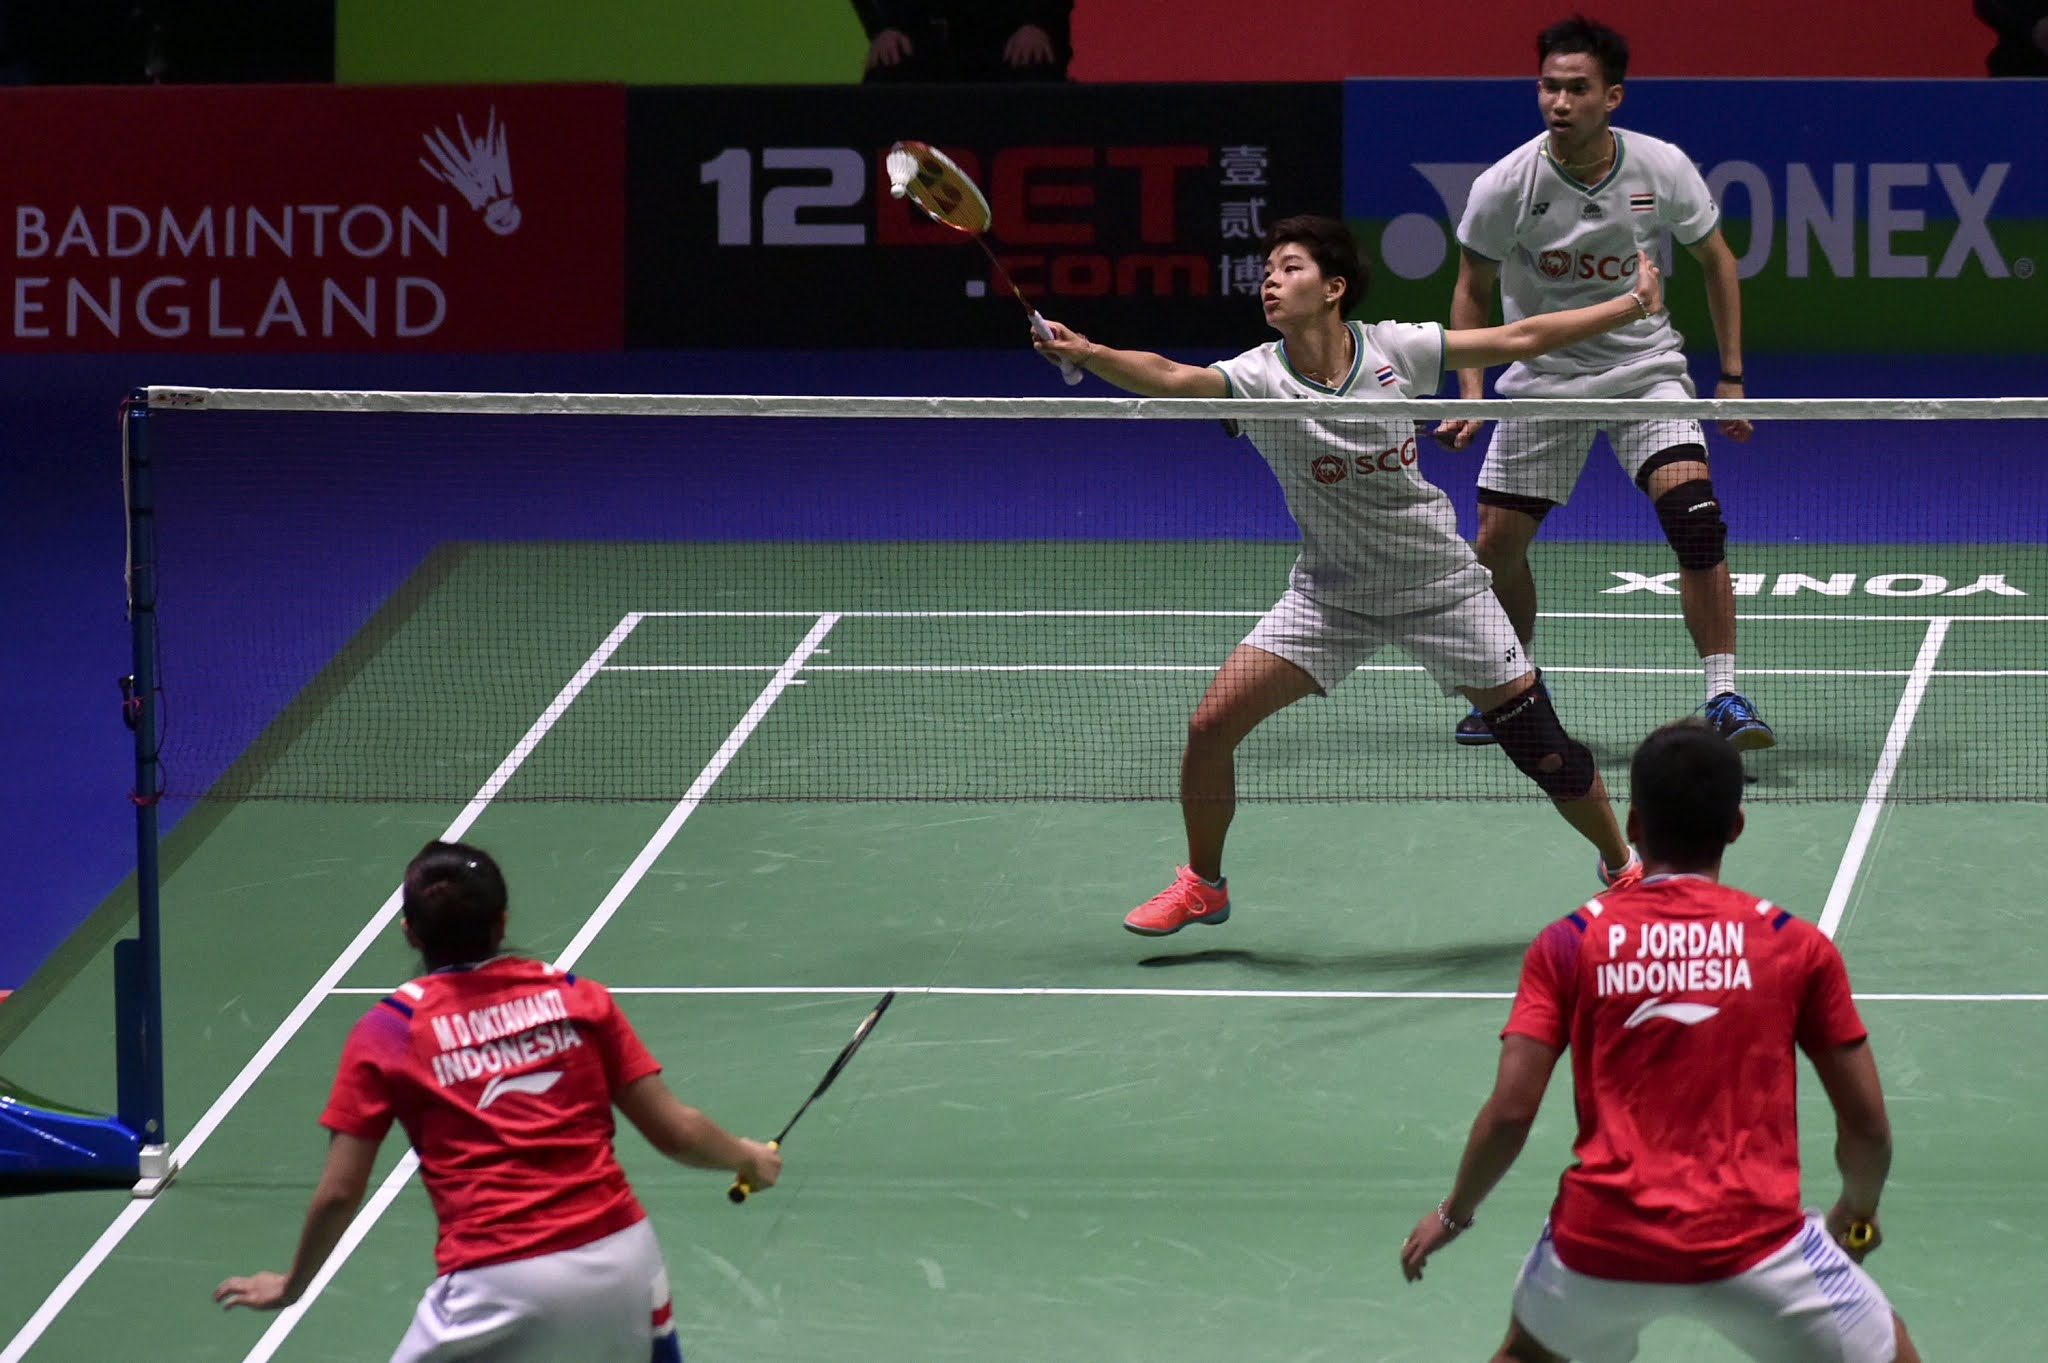 Beginners' Guide To Playing Badminton